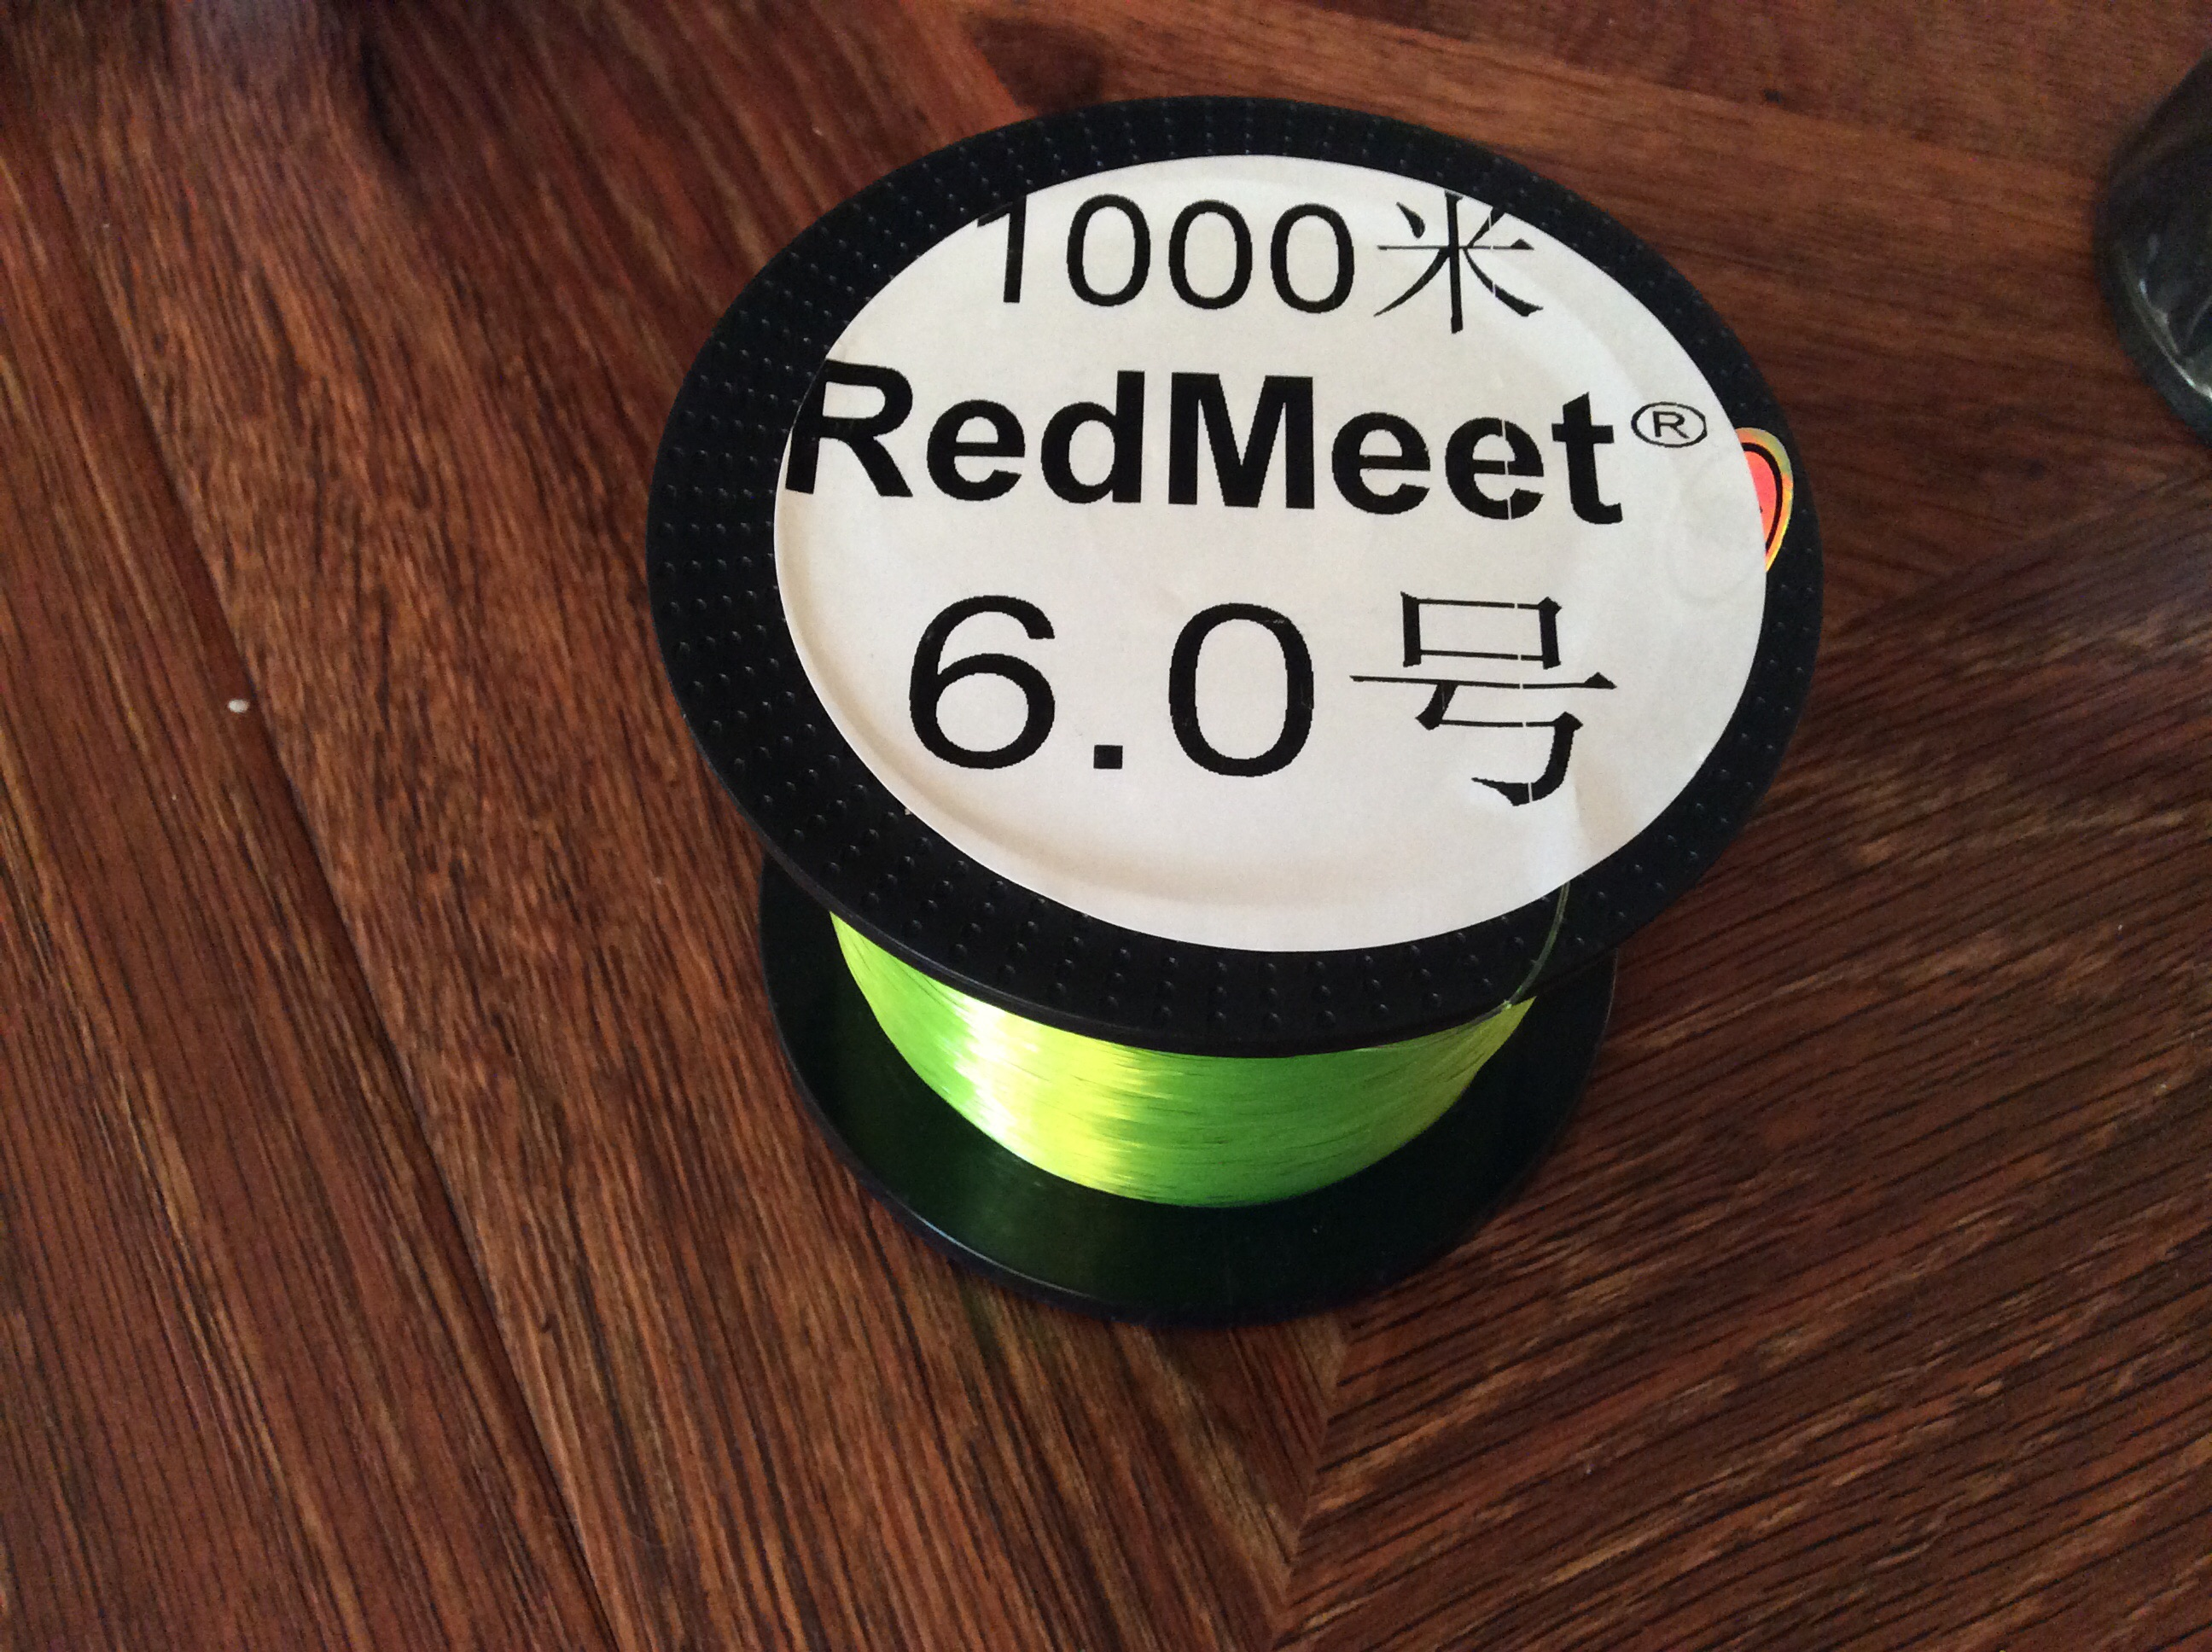 RedMeet NEW 1000M Nylon Fishing Line Japanese Durable Monofilament Rock Sea Fishing Line Thread Bulk Spool All Size 0.6 To 8.0-in Fishing Lines from Sports & Entertainment on AliExpress